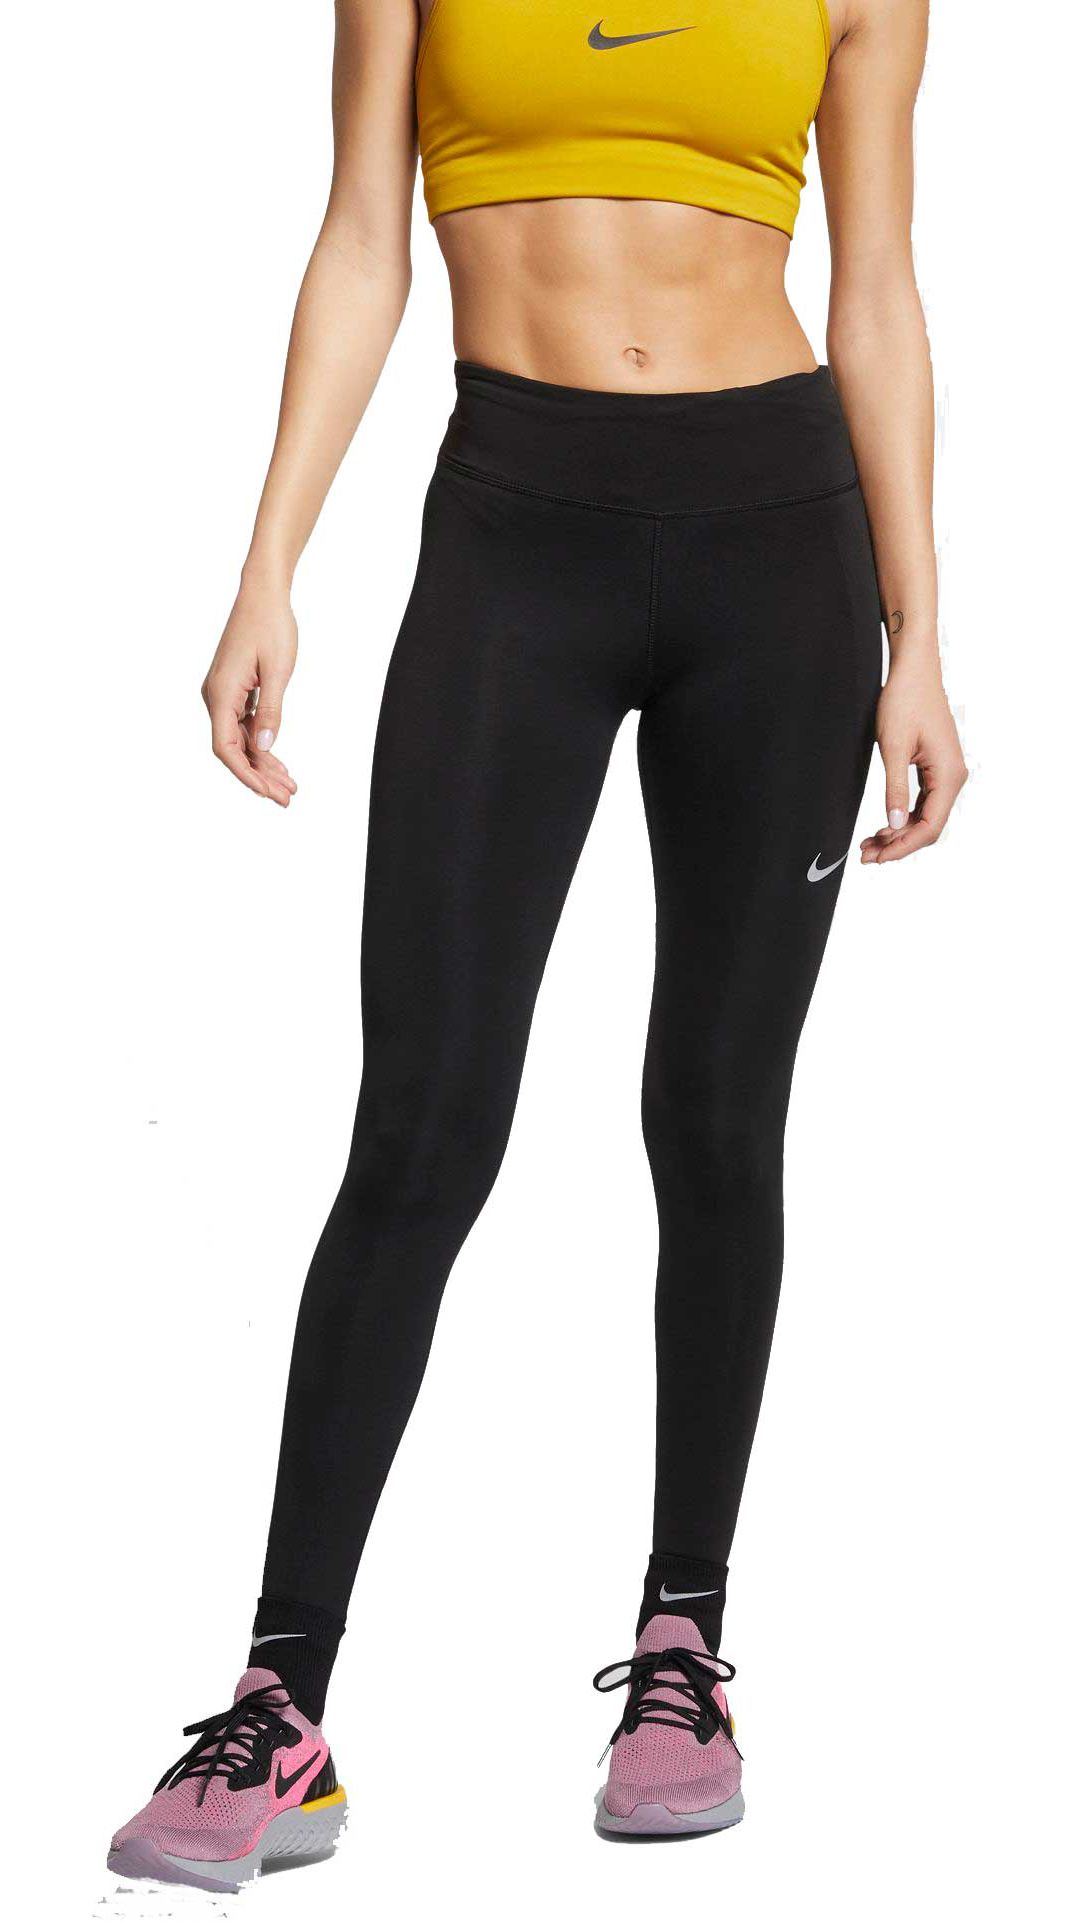 bddbcd1e840fe Nike Women's Fast Running Tights | DICK'S Sporting Goods